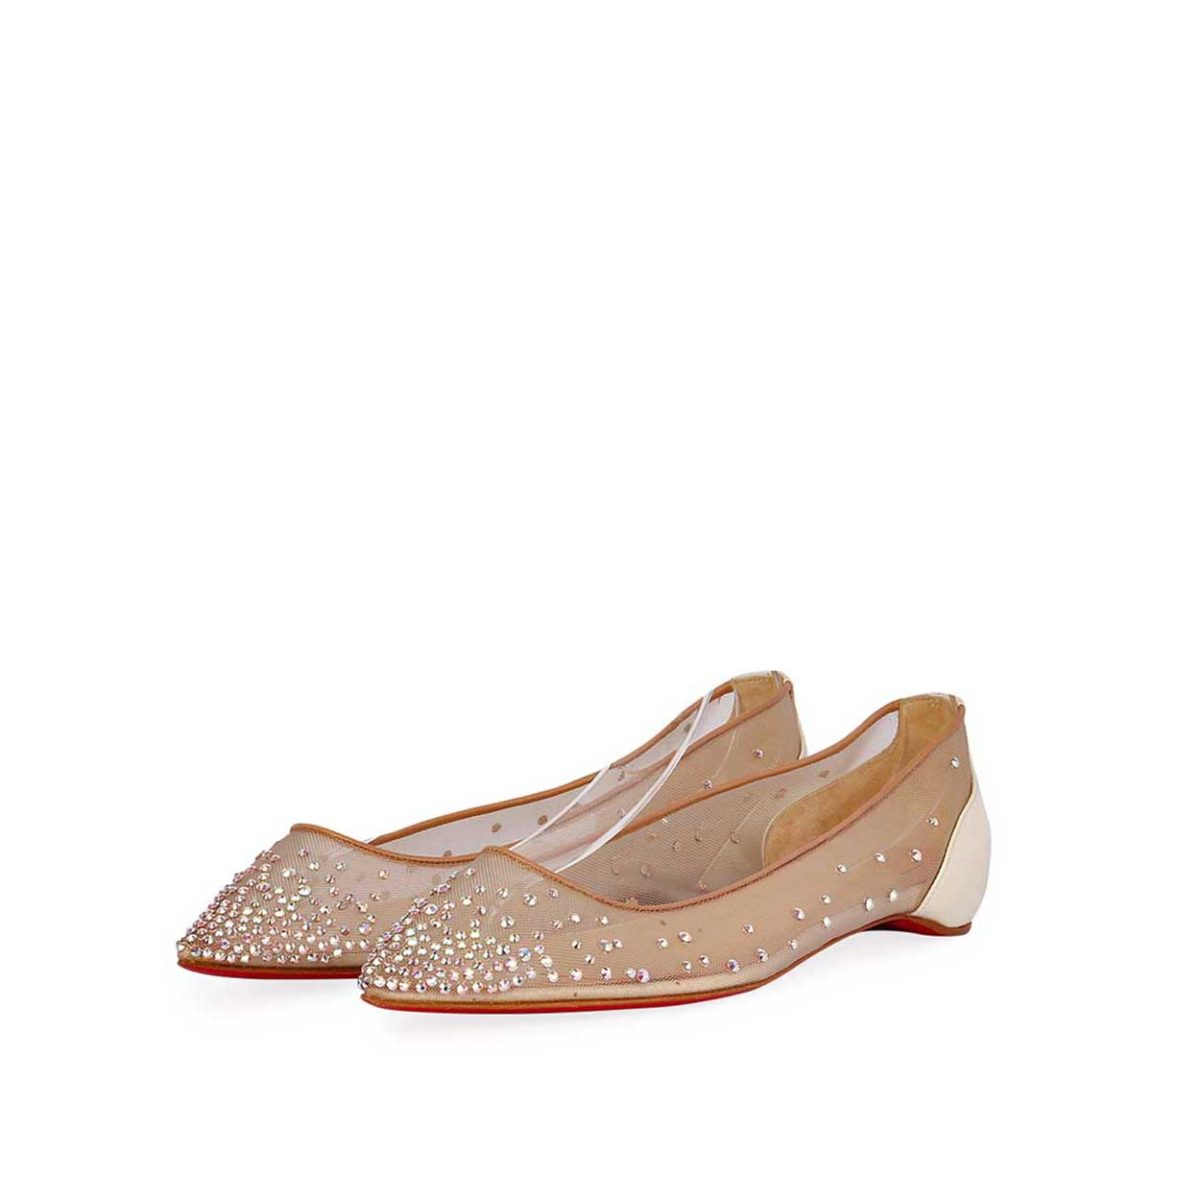 f5f5687f7d4 CHRISTIAN LOUBOUTIN Follie Strass Flats - S: 37.5 (4.5) - NEW